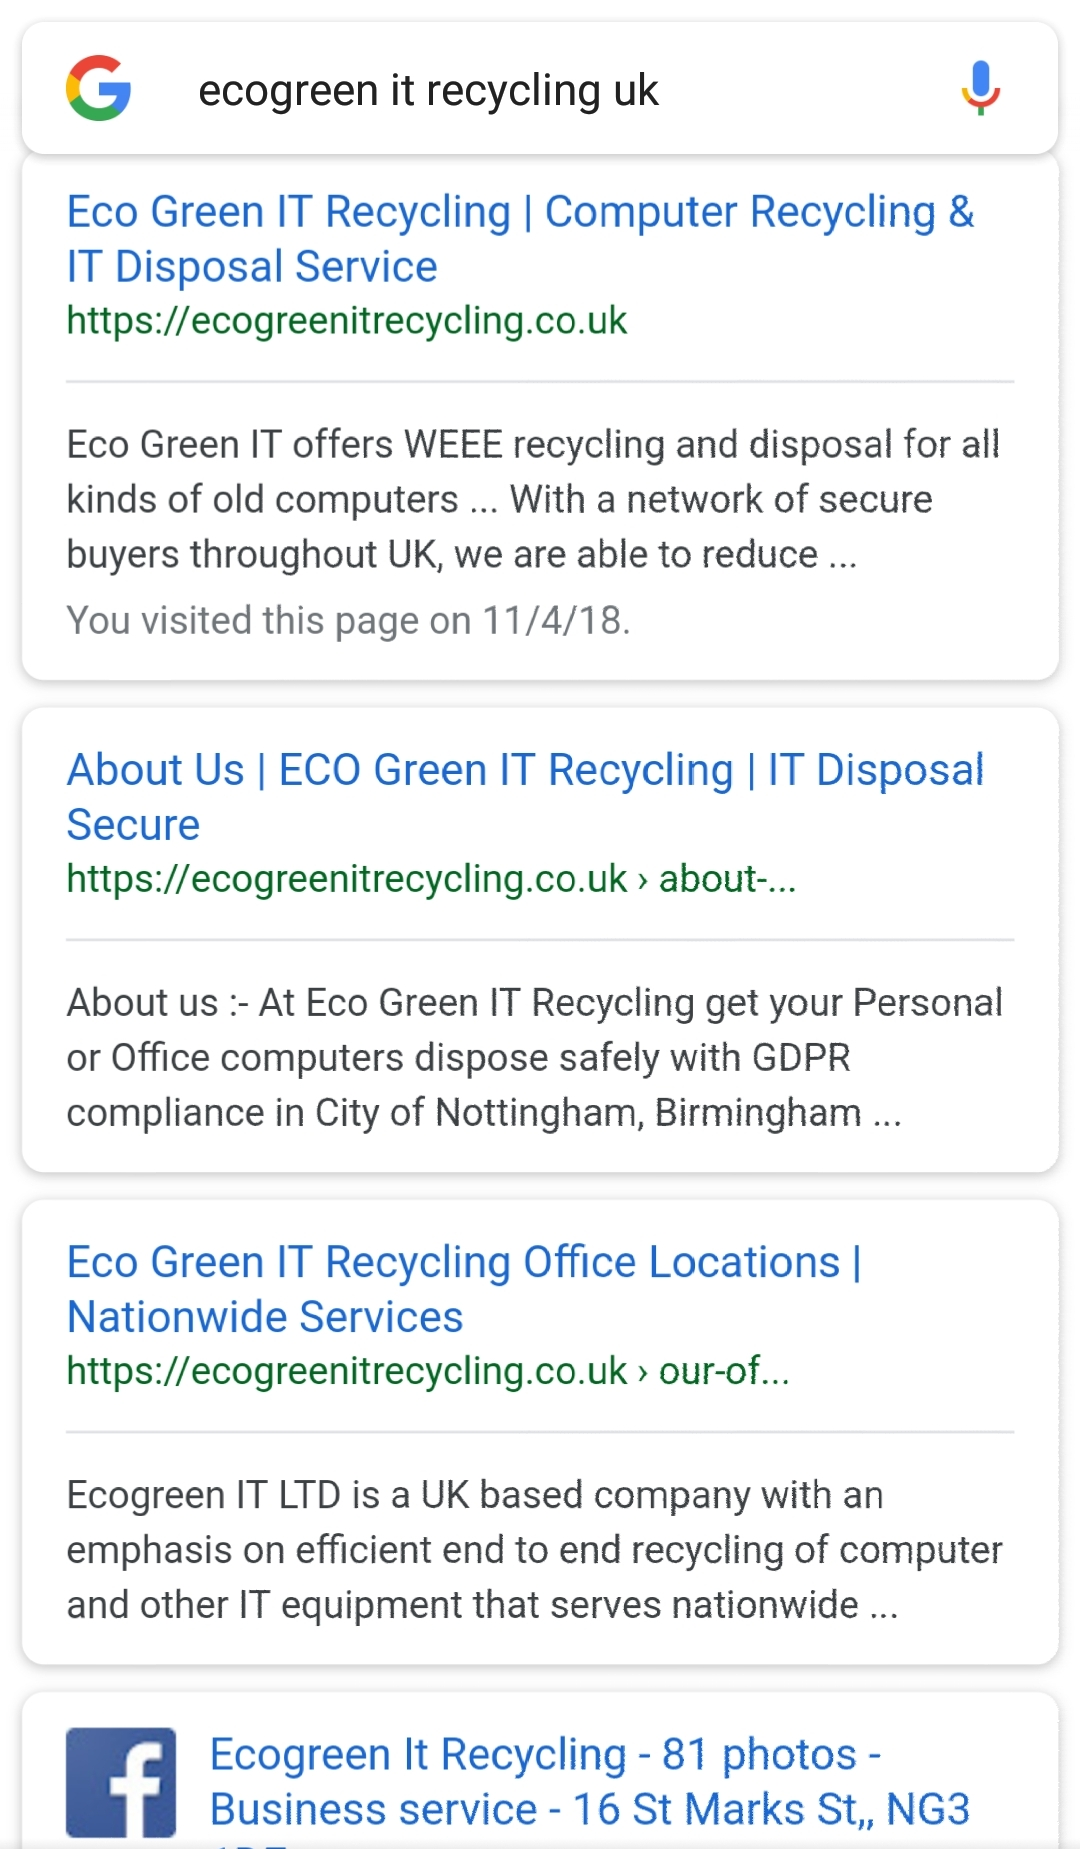 schema markup for ecogreen it recycling